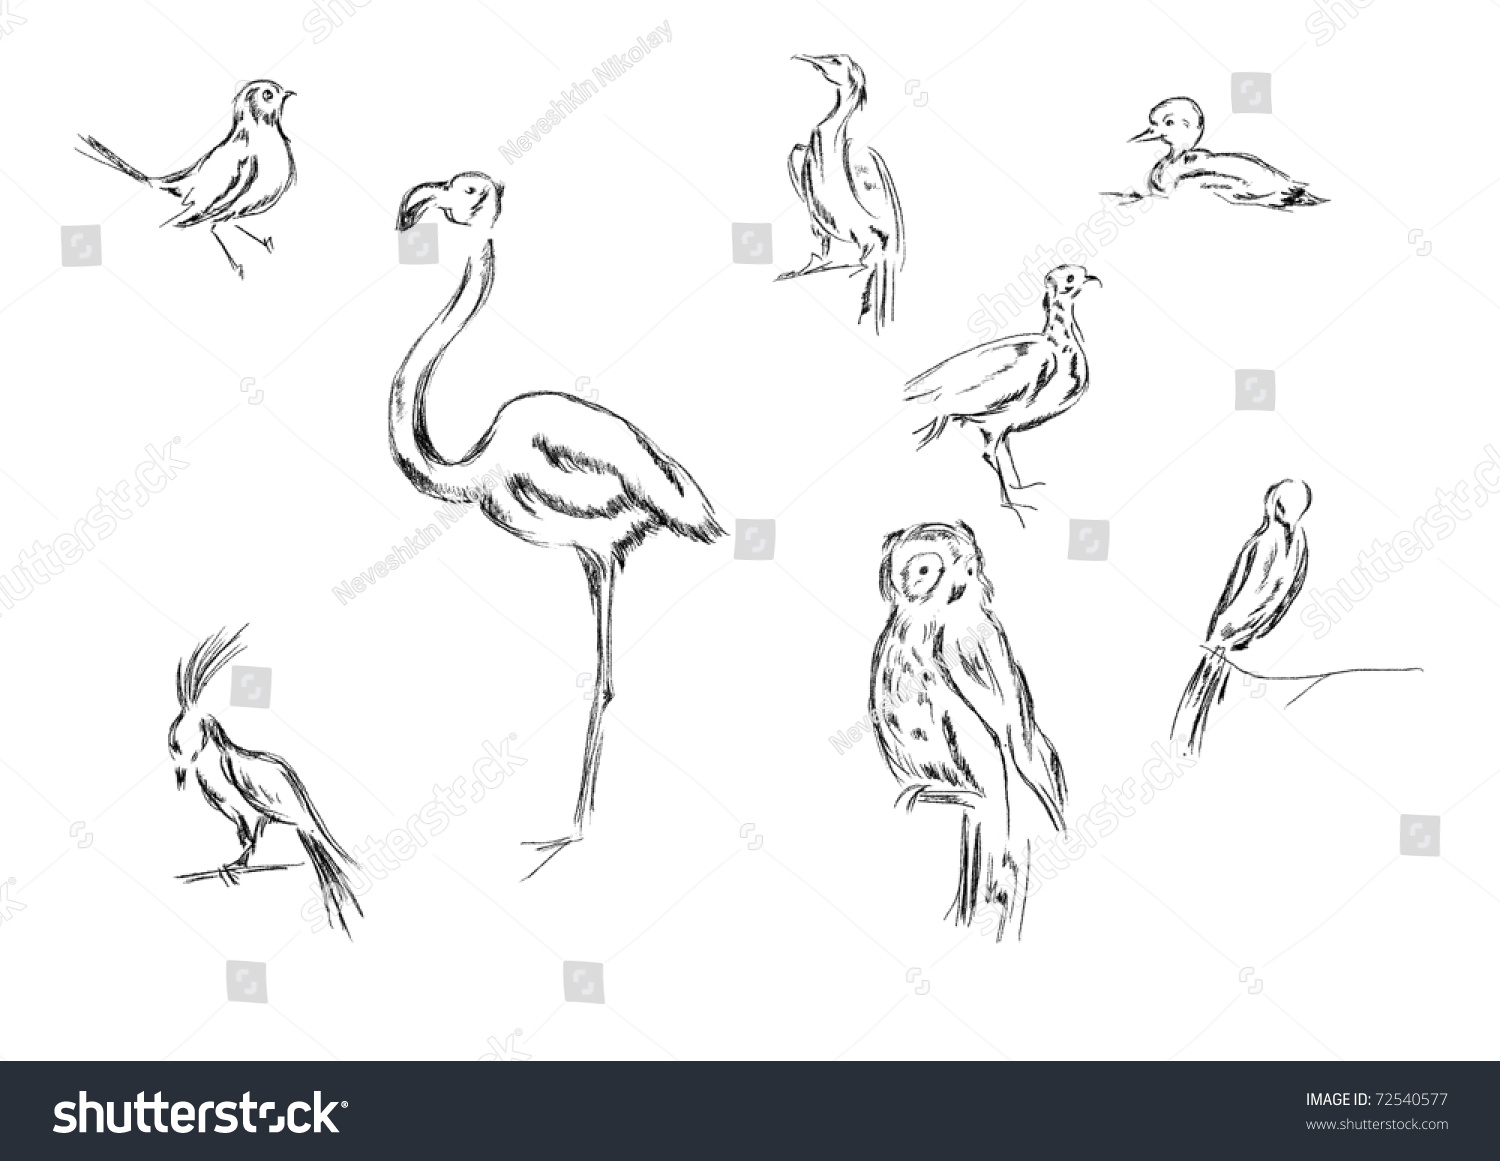 this image shows different types birds stock illustration 72540577